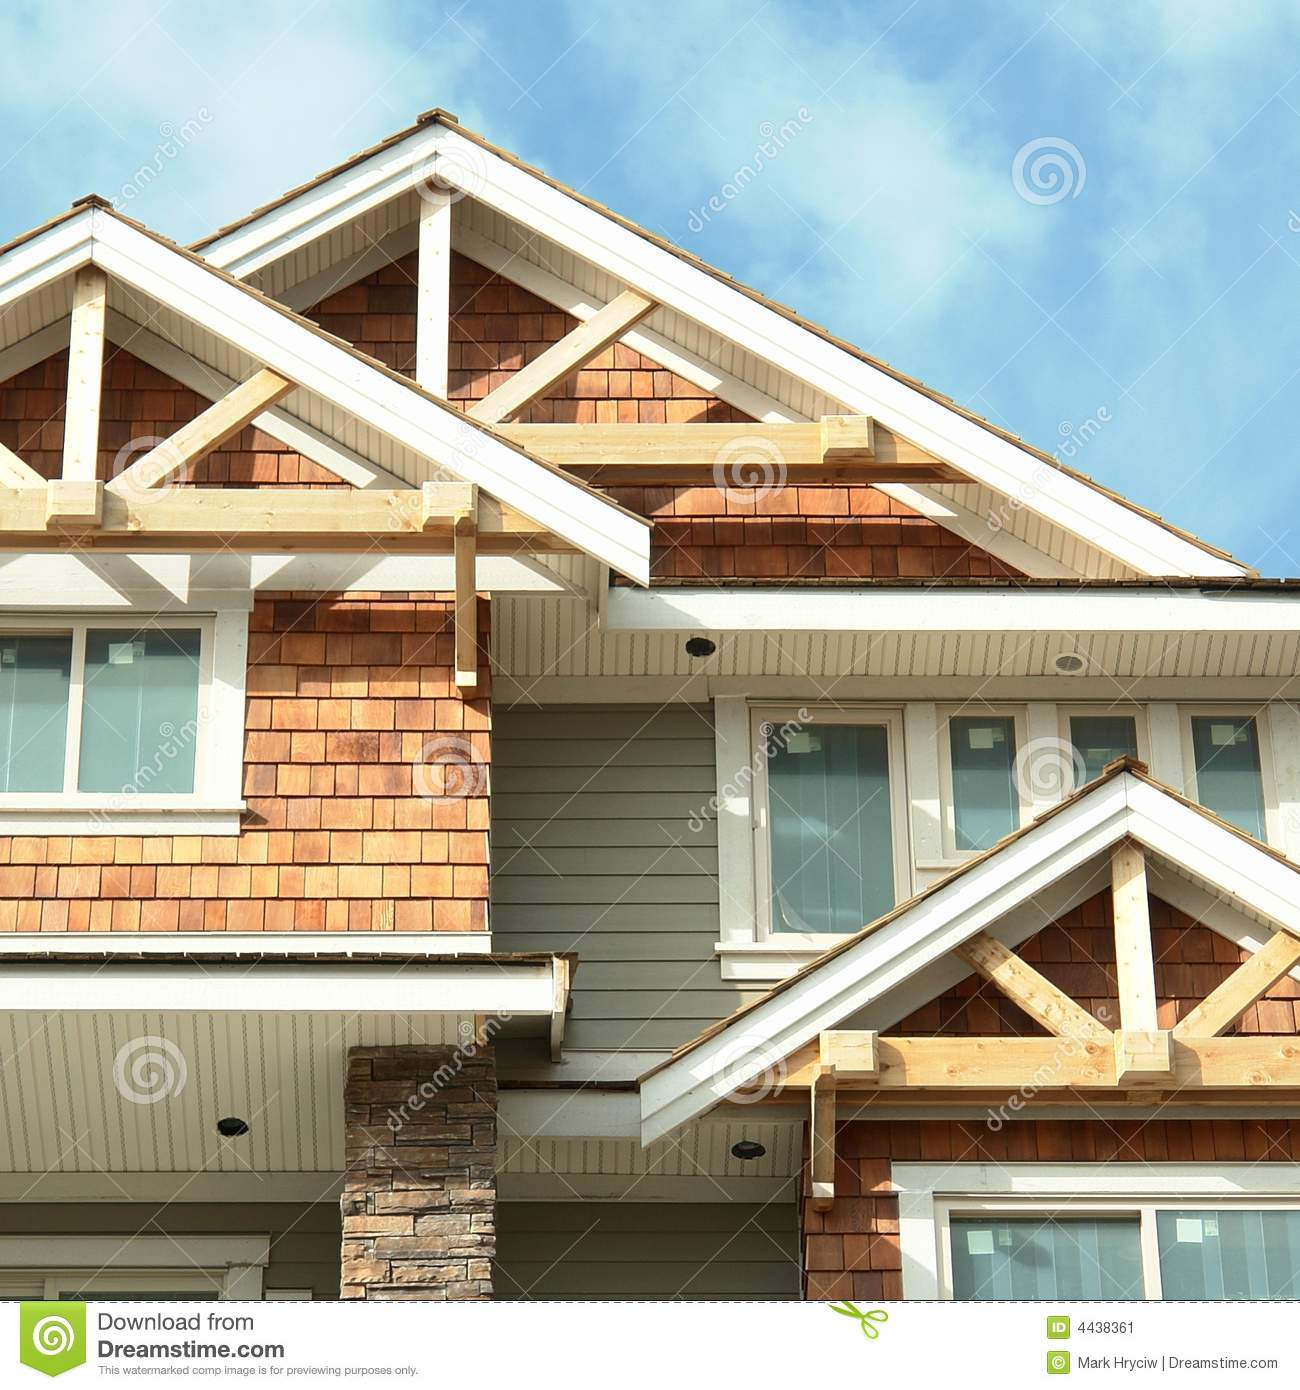 House Home Exterior Siding Stock Image - Image: 4438361